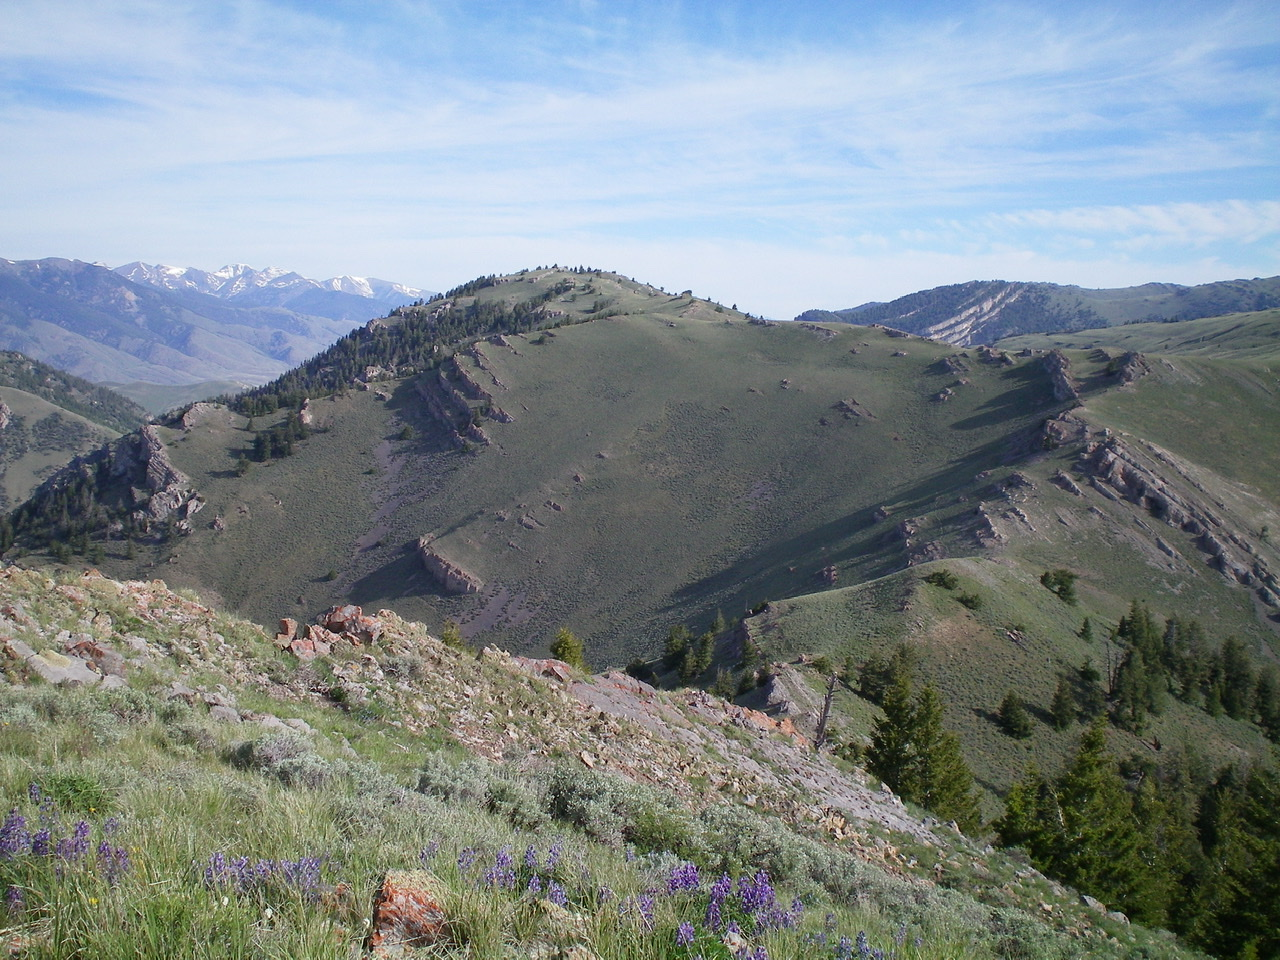 Peak 8603 (far left), its Southeast Ridge (leading up to it from the right), and the rocky South Segment of the ridge (right of center) coming up from the connecting saddle with Peak 8383. Viewed from the summit of Peak 8383. Livingston Douglas Photo